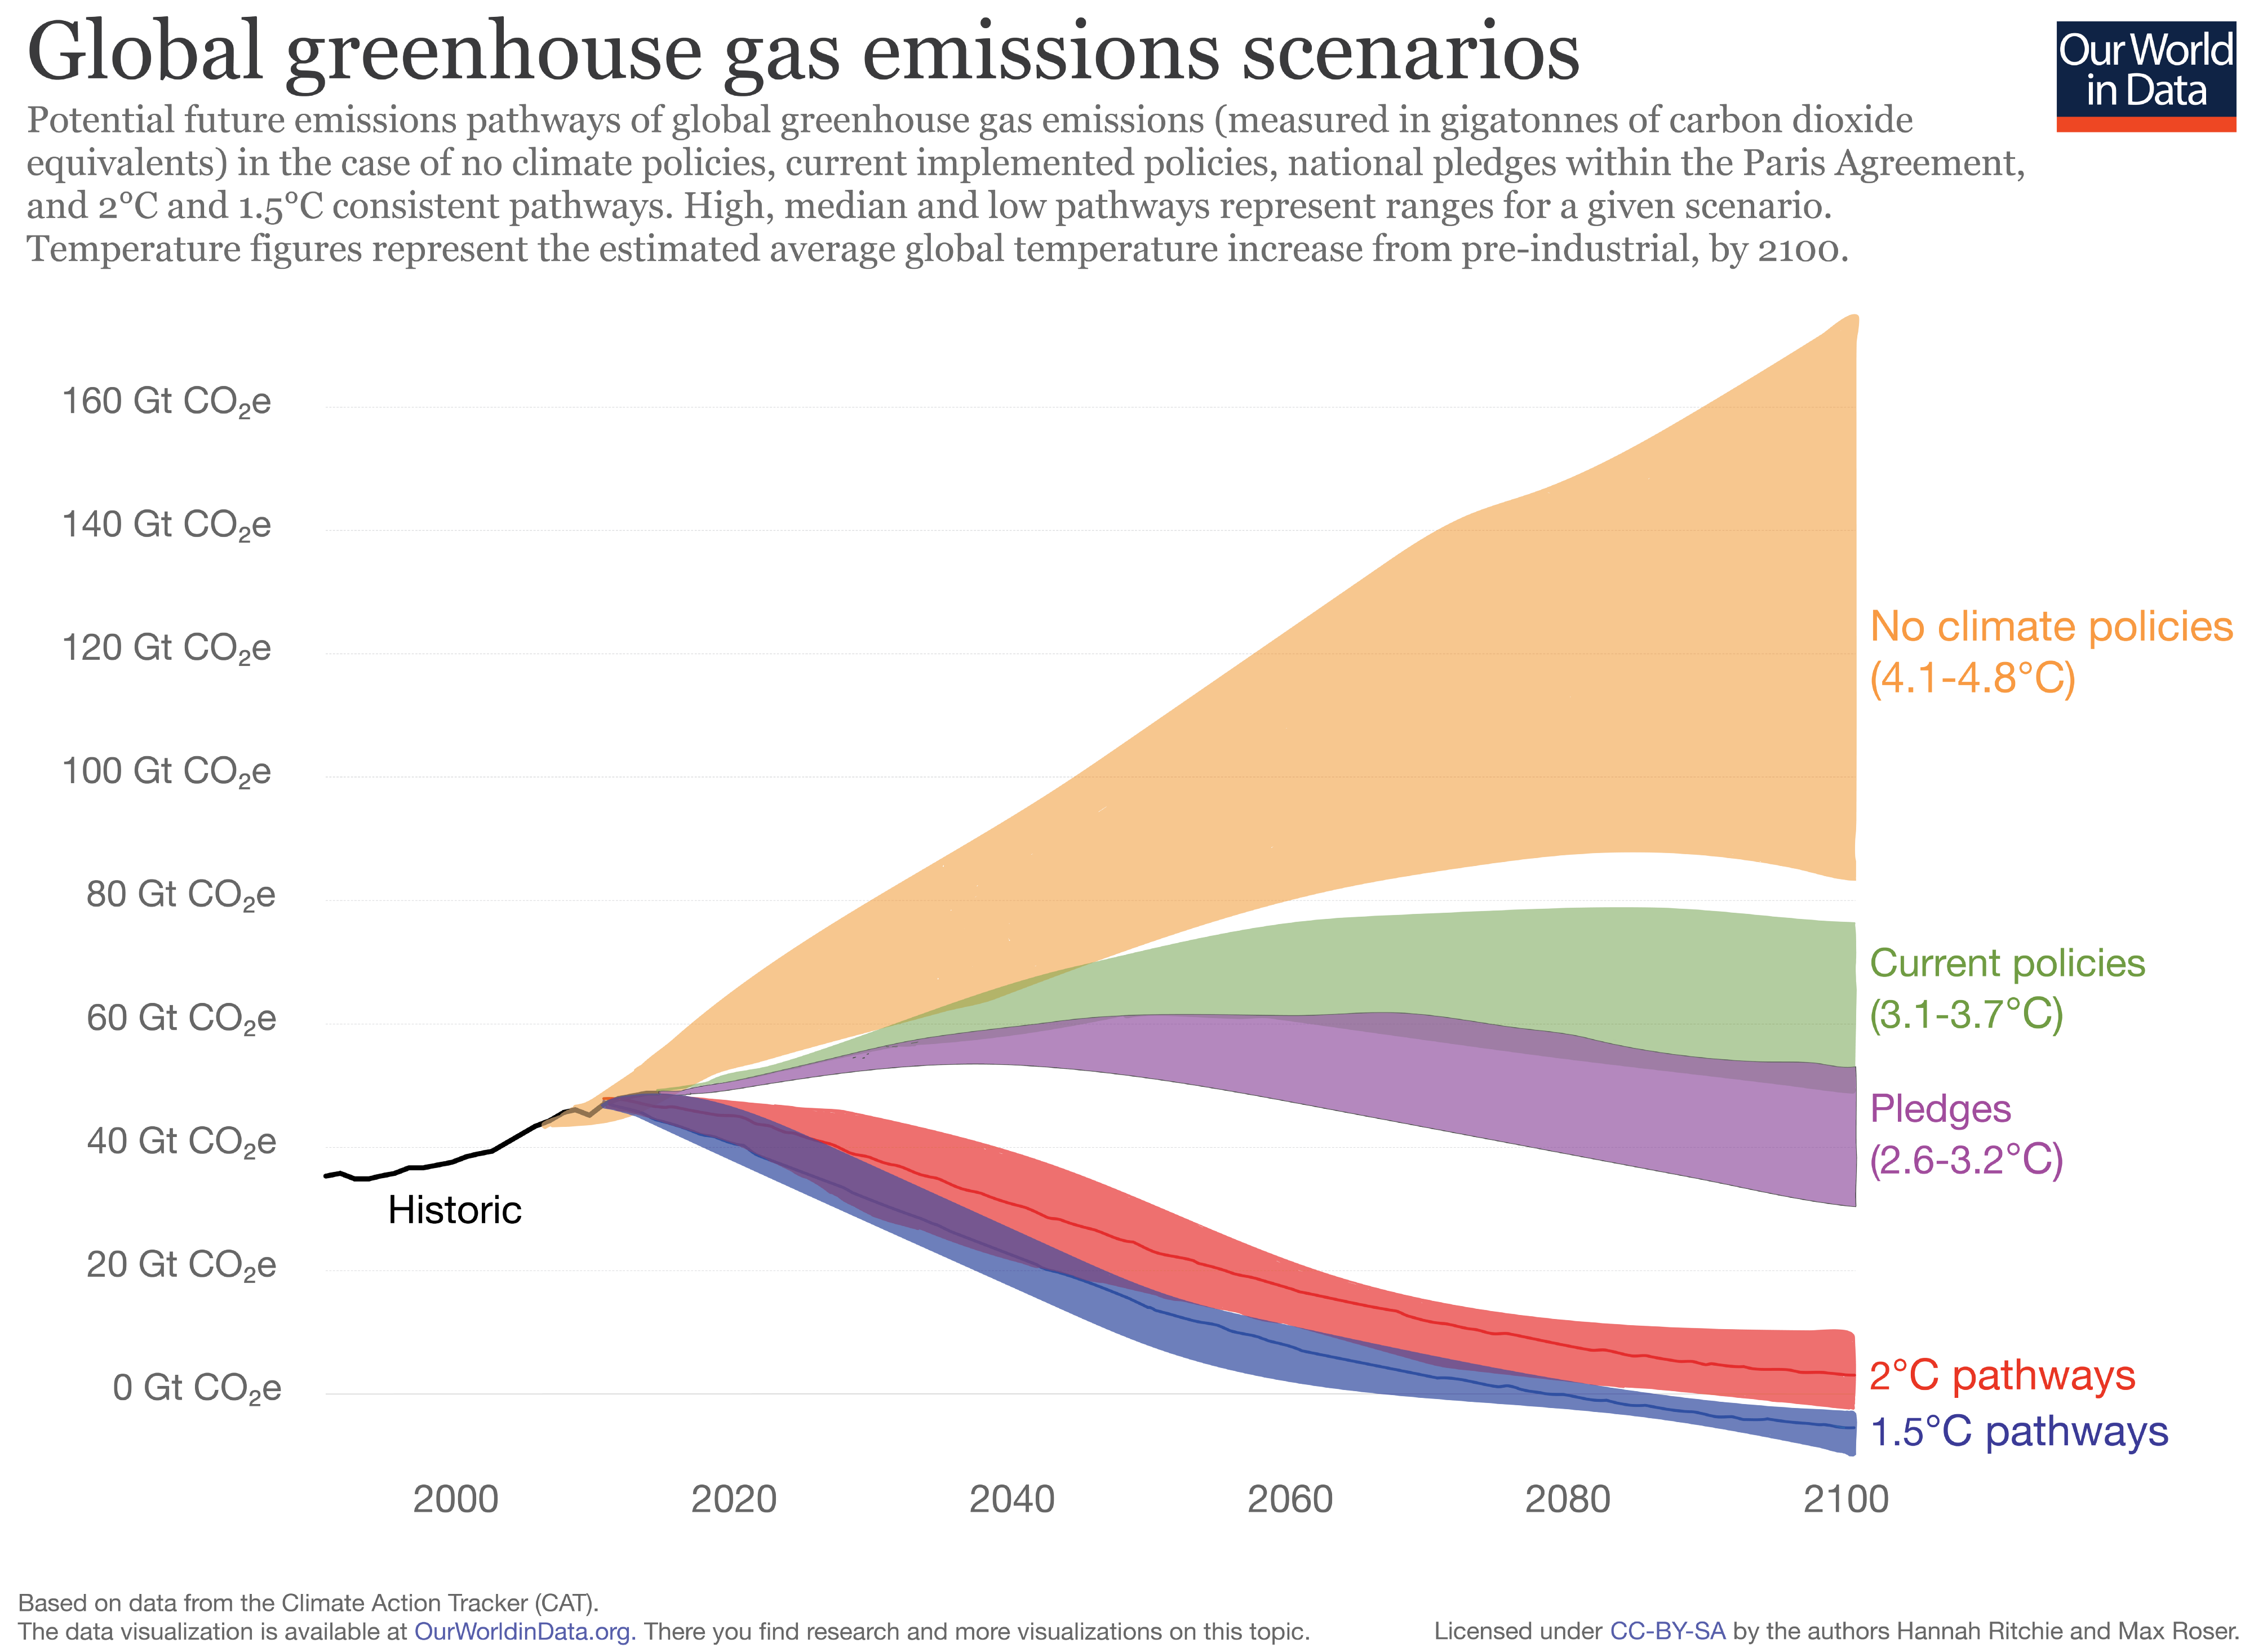 Graph of global greenhouse gas emission scenarios showing the level of reduction required to hit 1.5°C & 2°C.